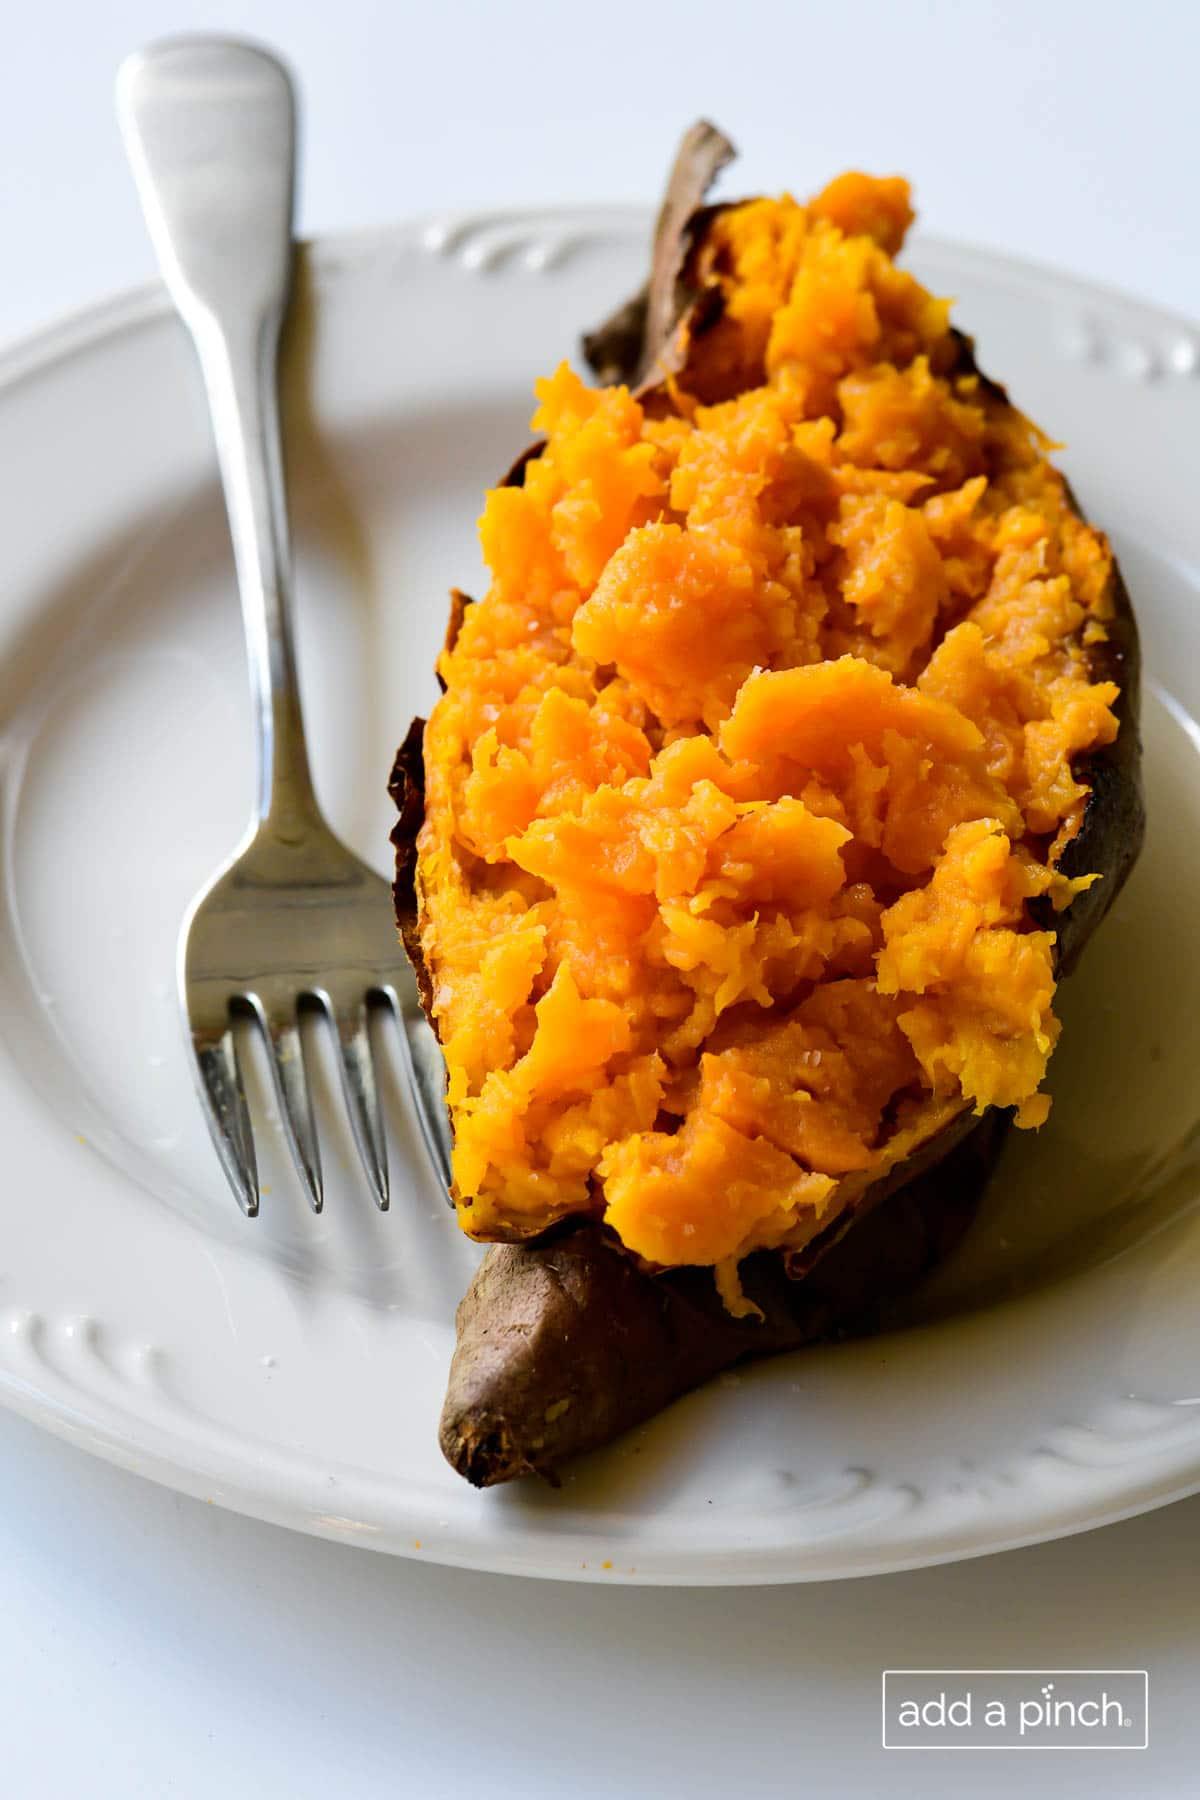 Photograph of baked sweet potato on a white plate with fork.